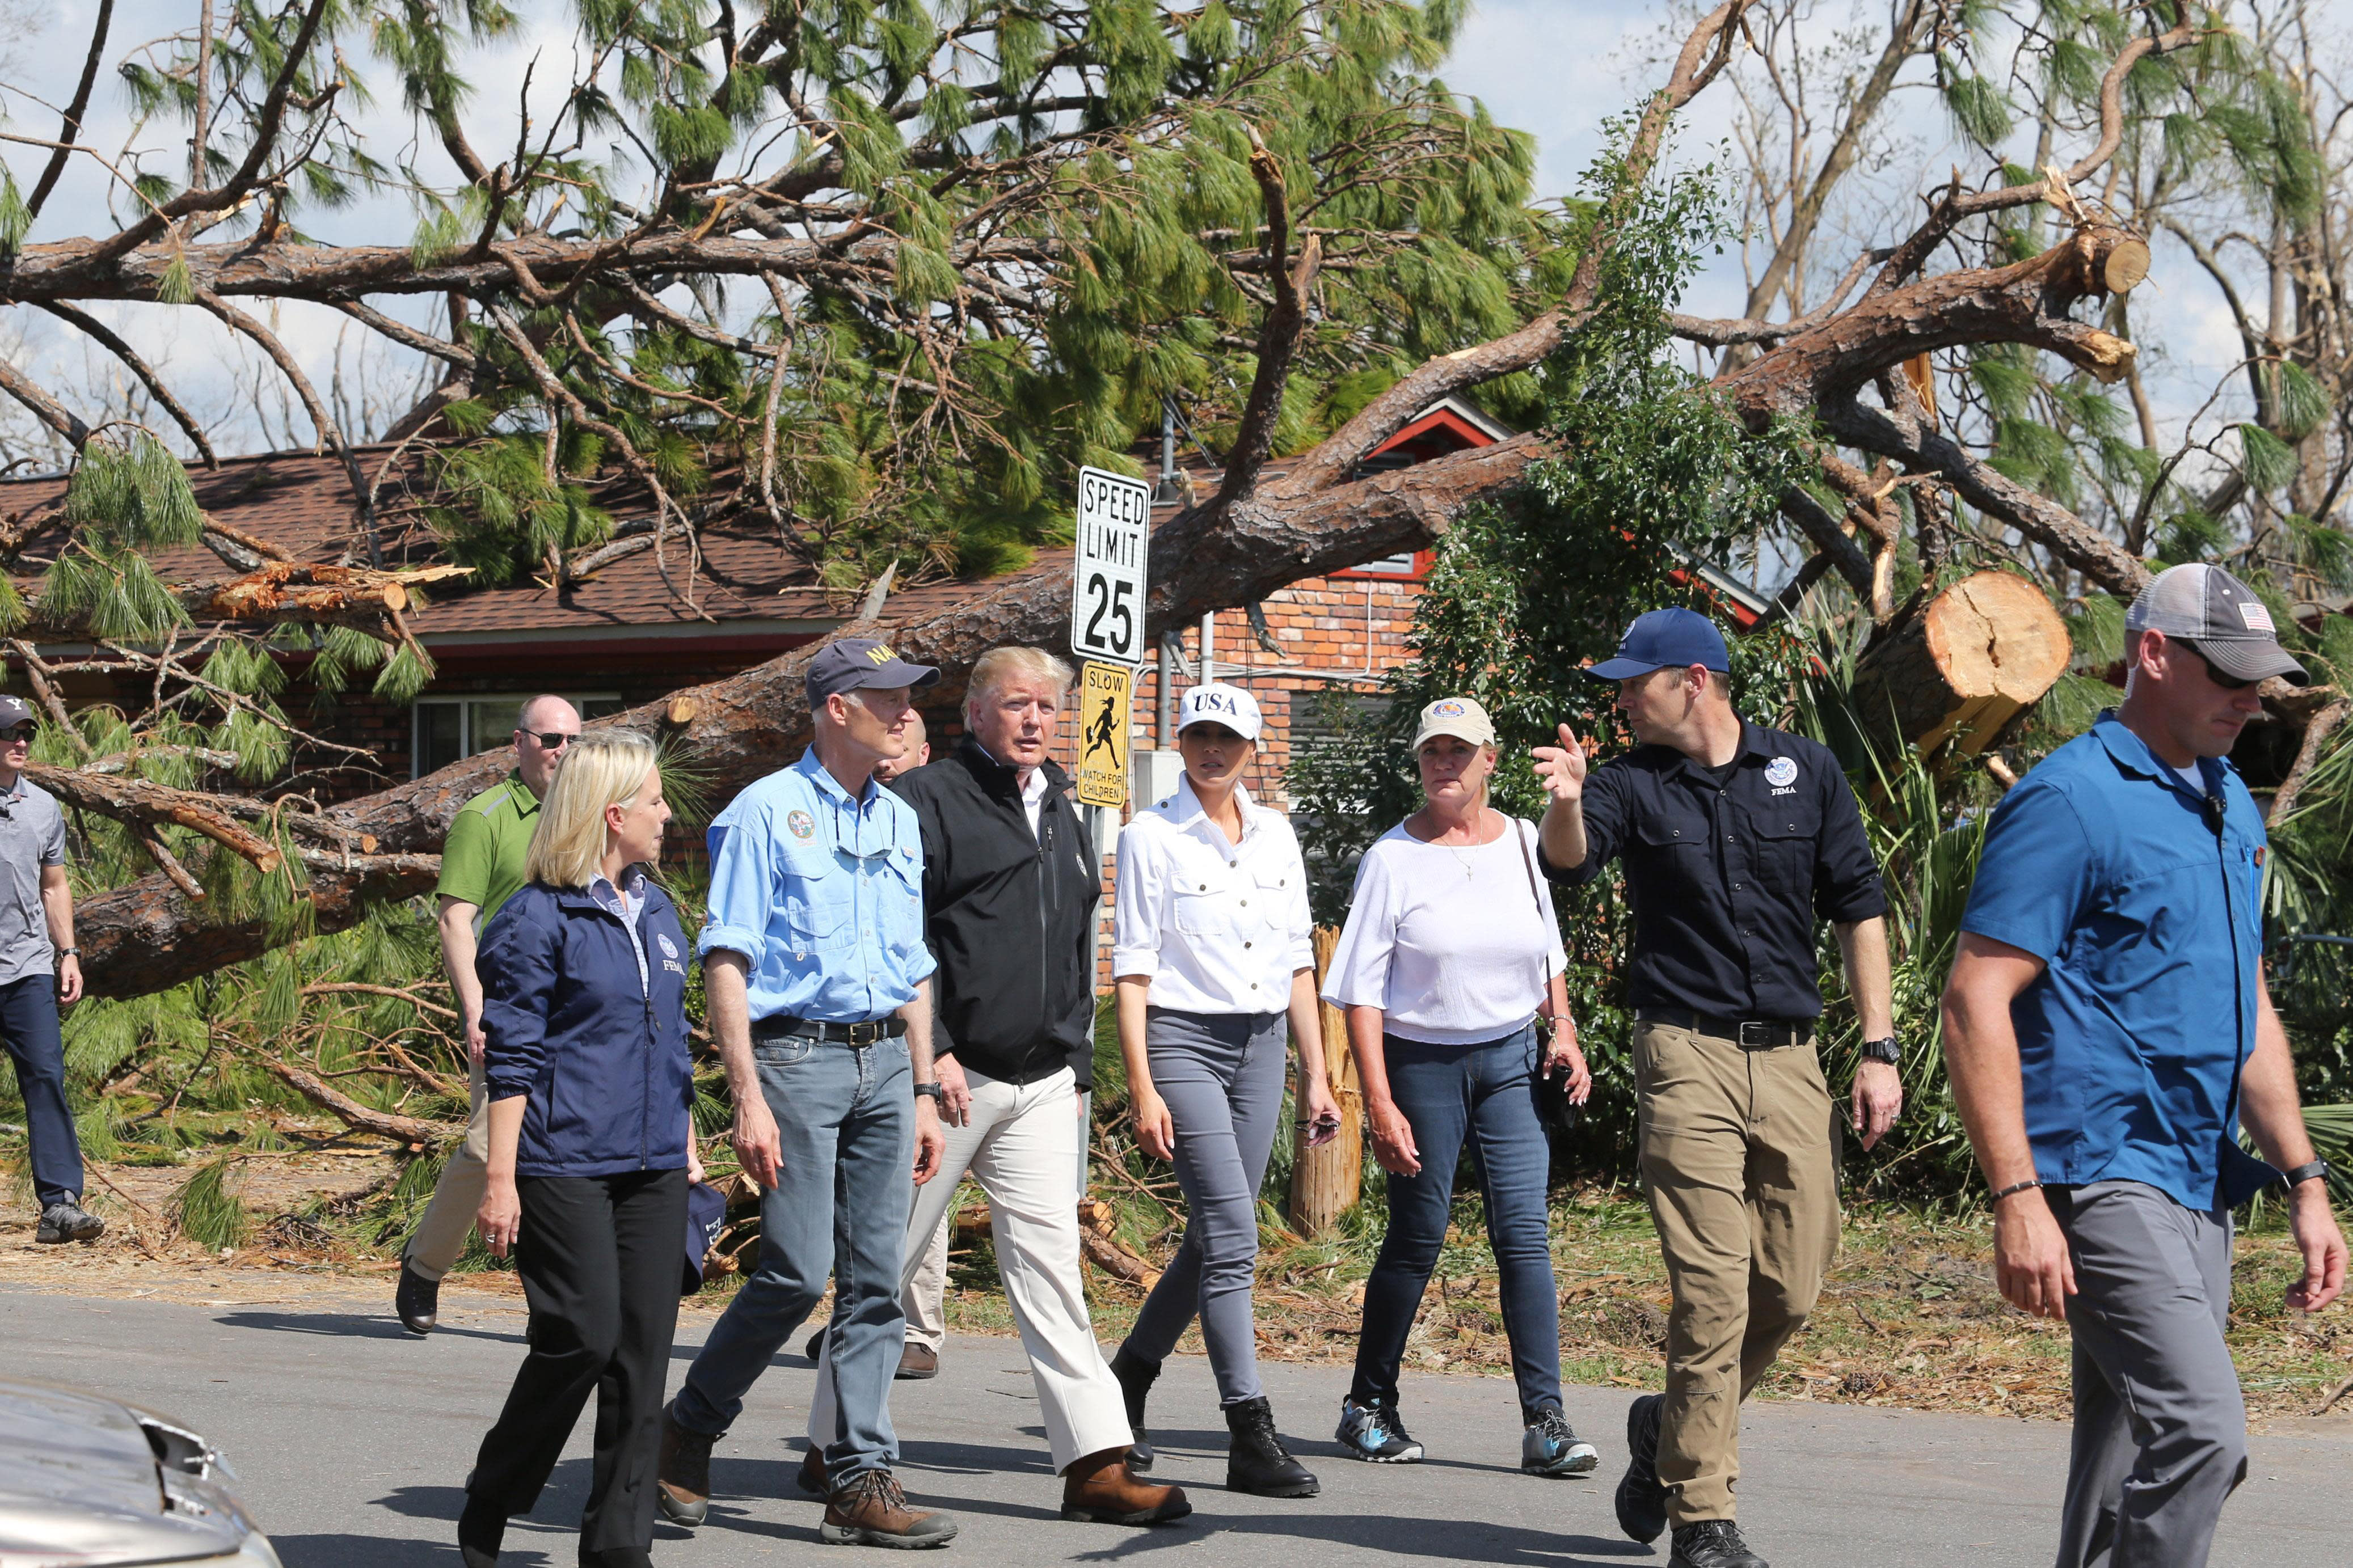 Florida Gov. Rick Scott, second from left, President Donald J Trump, center left, Melania Trump, center right, and Lynn Haven, Fla., Mayor Margo Anderson walk through a neighborhood in the storm-ravaged city Monday Oct. 15, 2018. (Michael Snyder/Northwest Florida Daily News via AP)